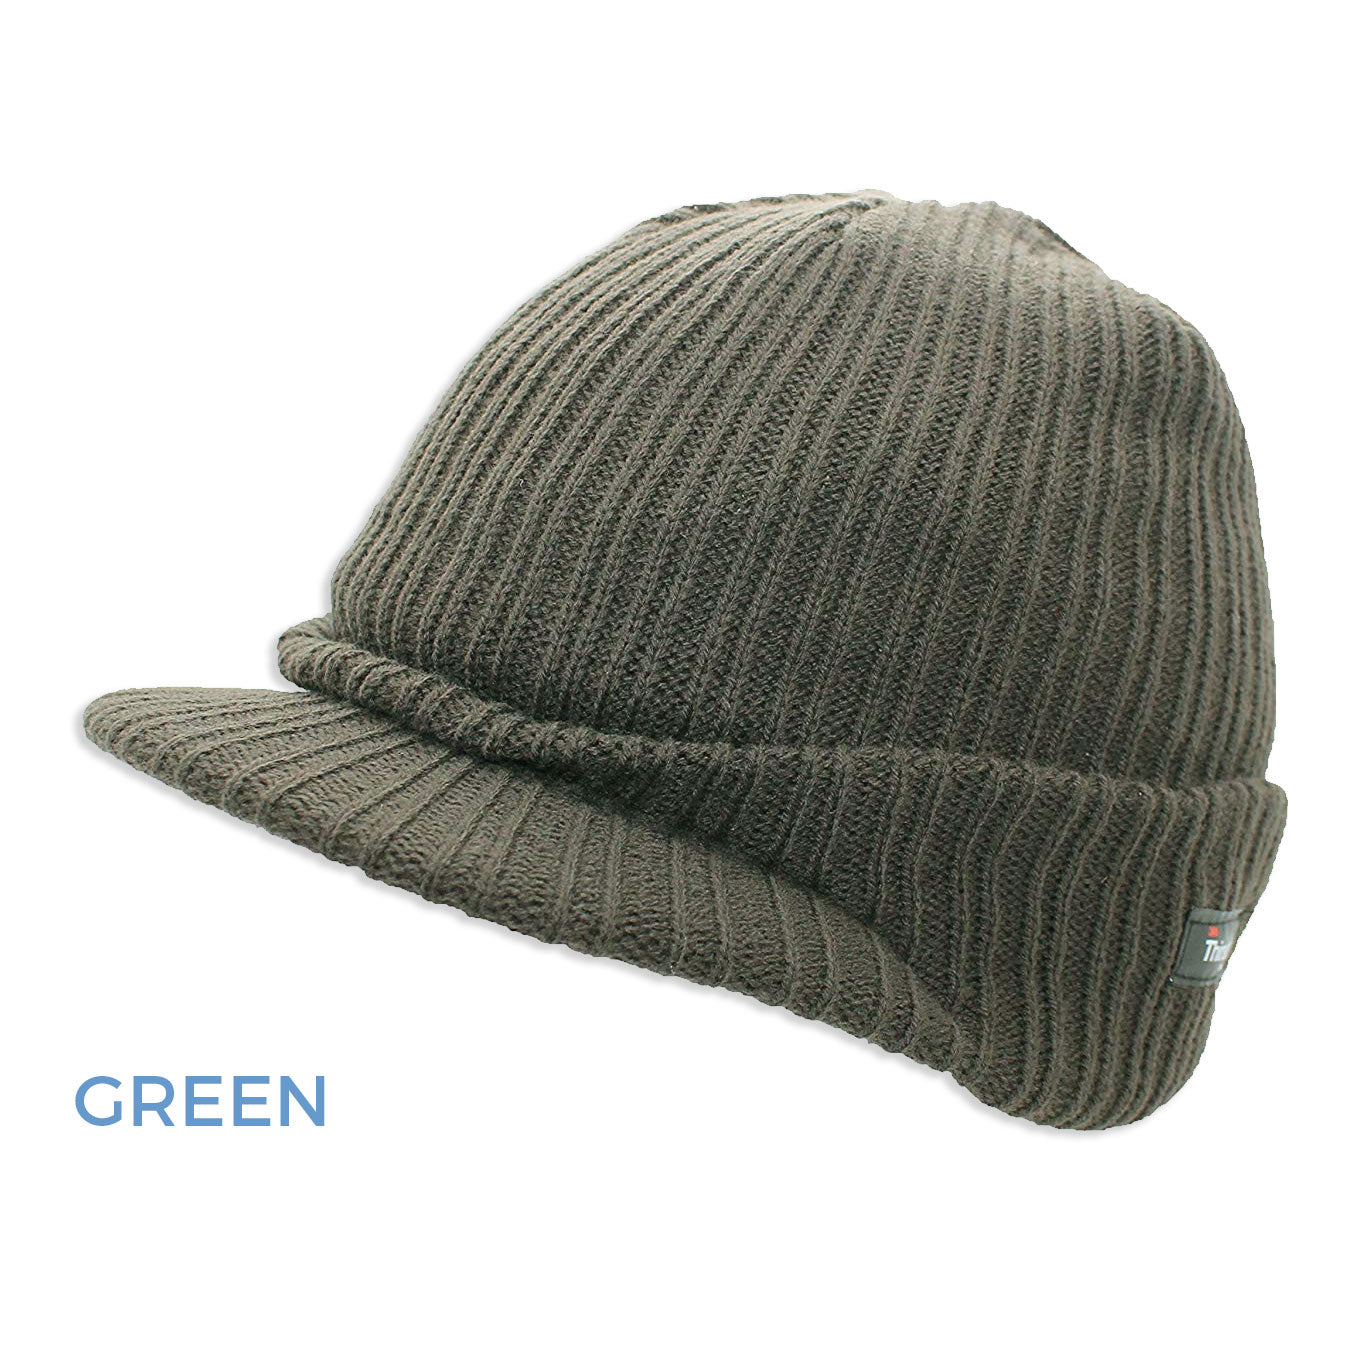 gREEN Thinsulate Knitted Peaked Watch Cap